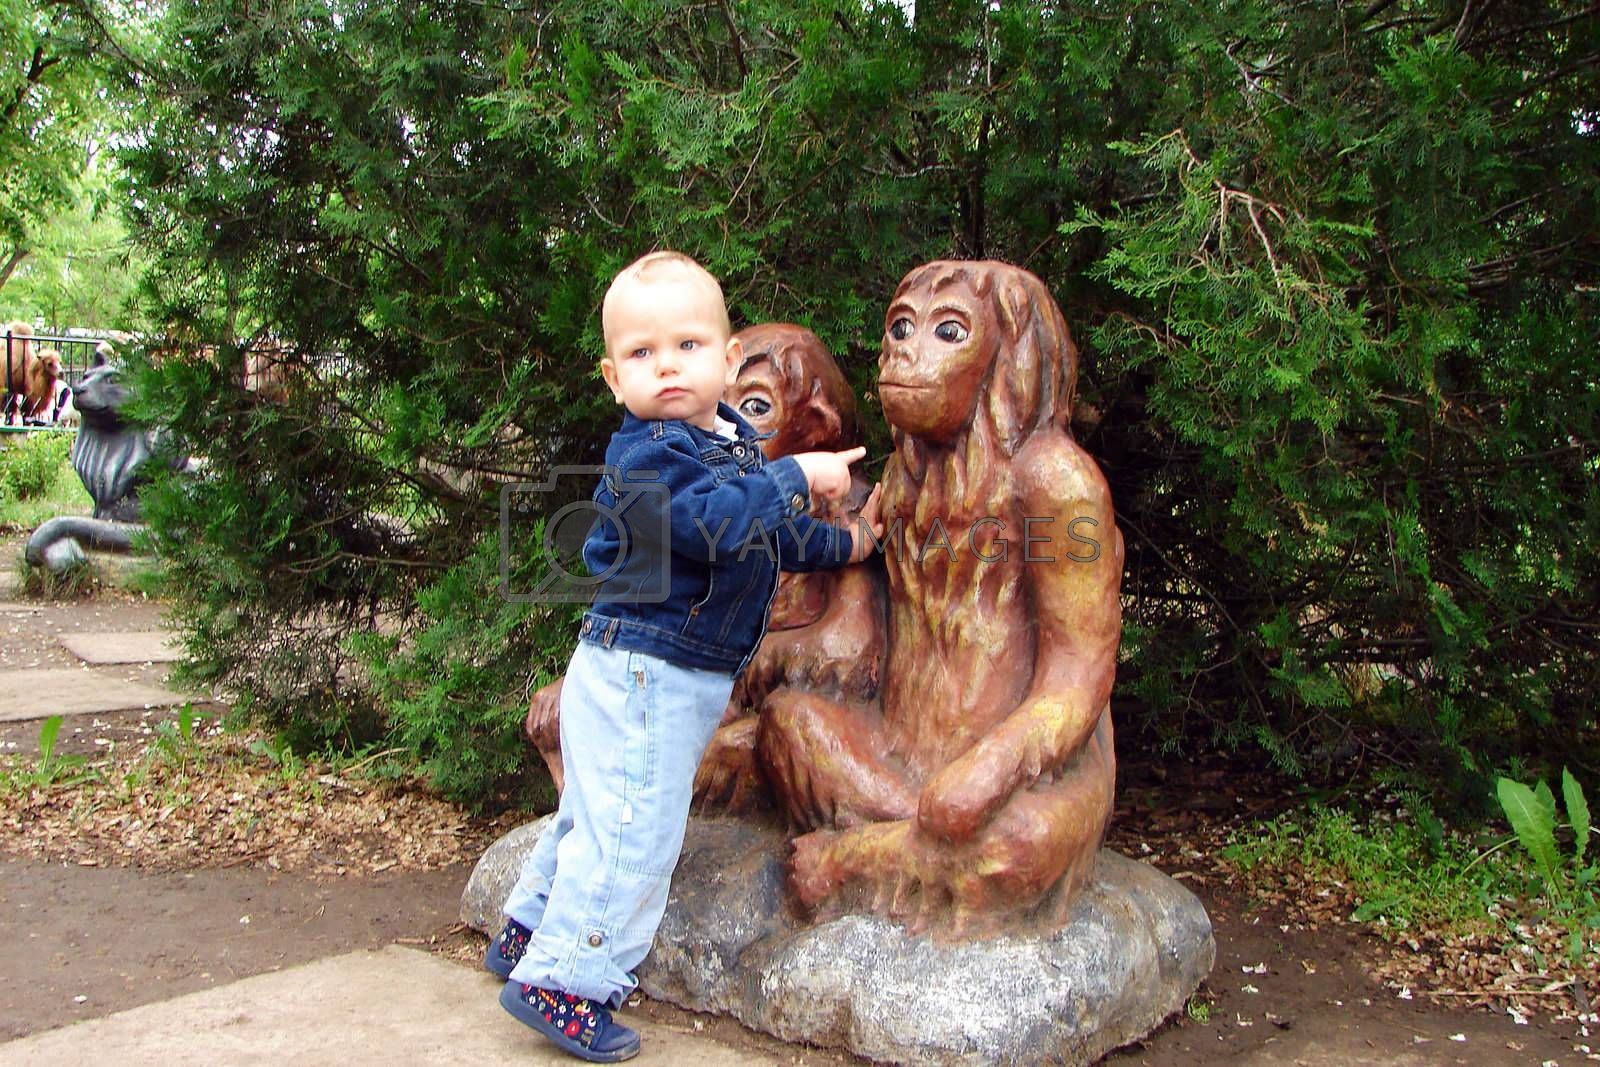 Babe in the city park next to the statues of monkeys